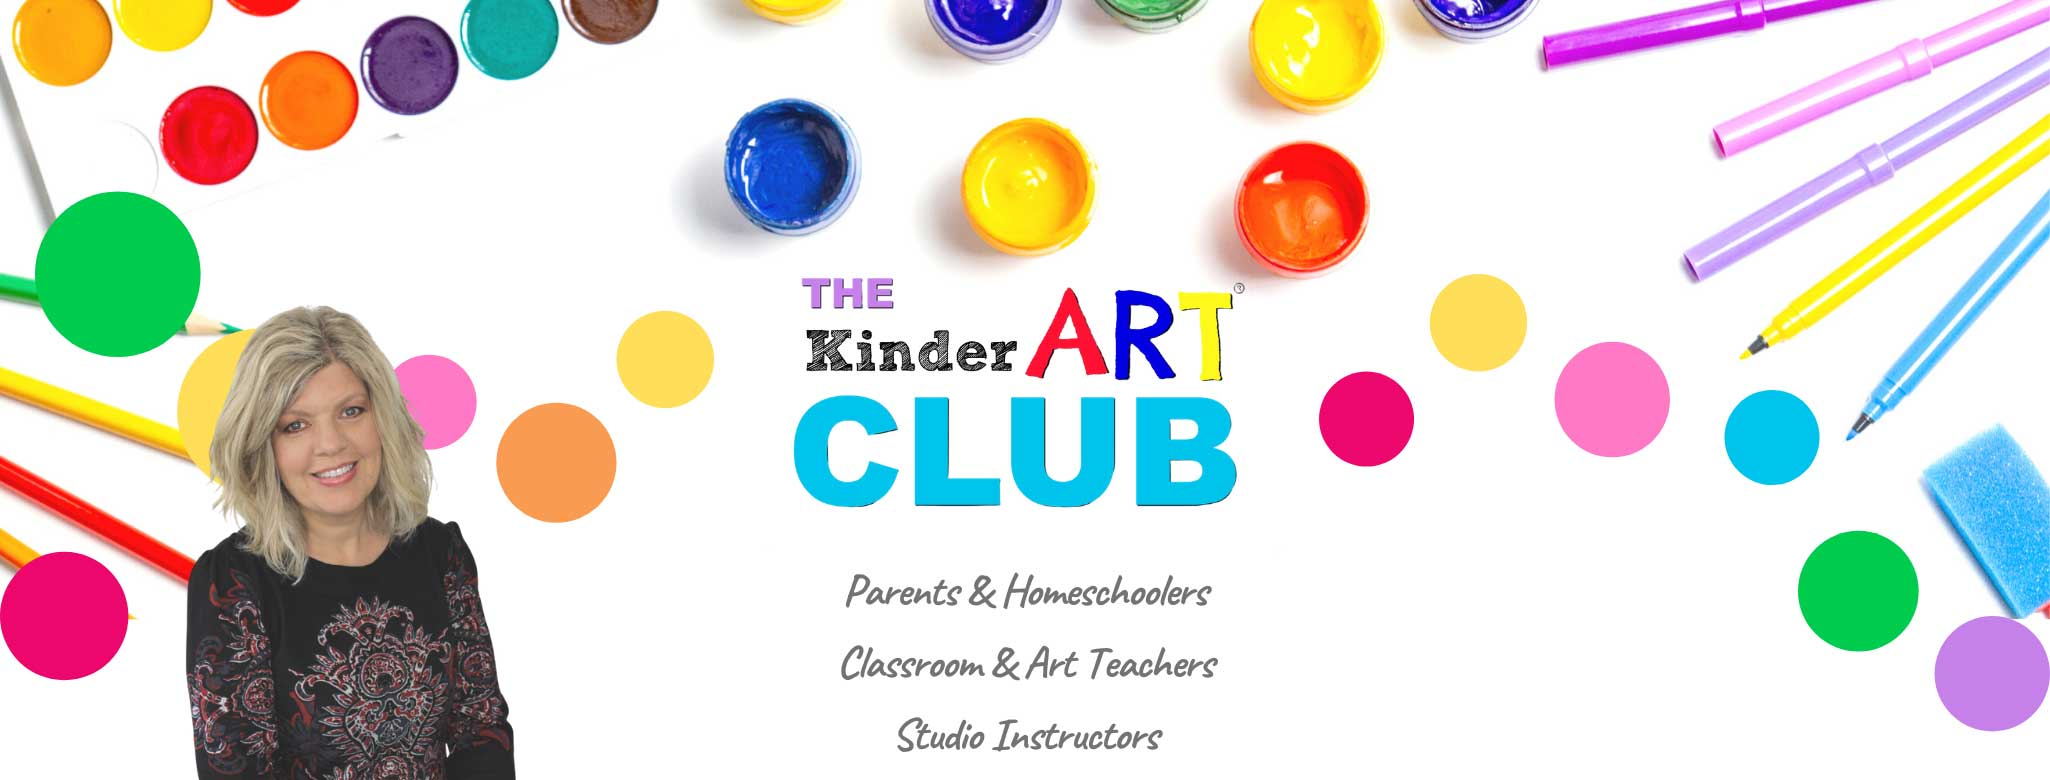 The KinderArt Club